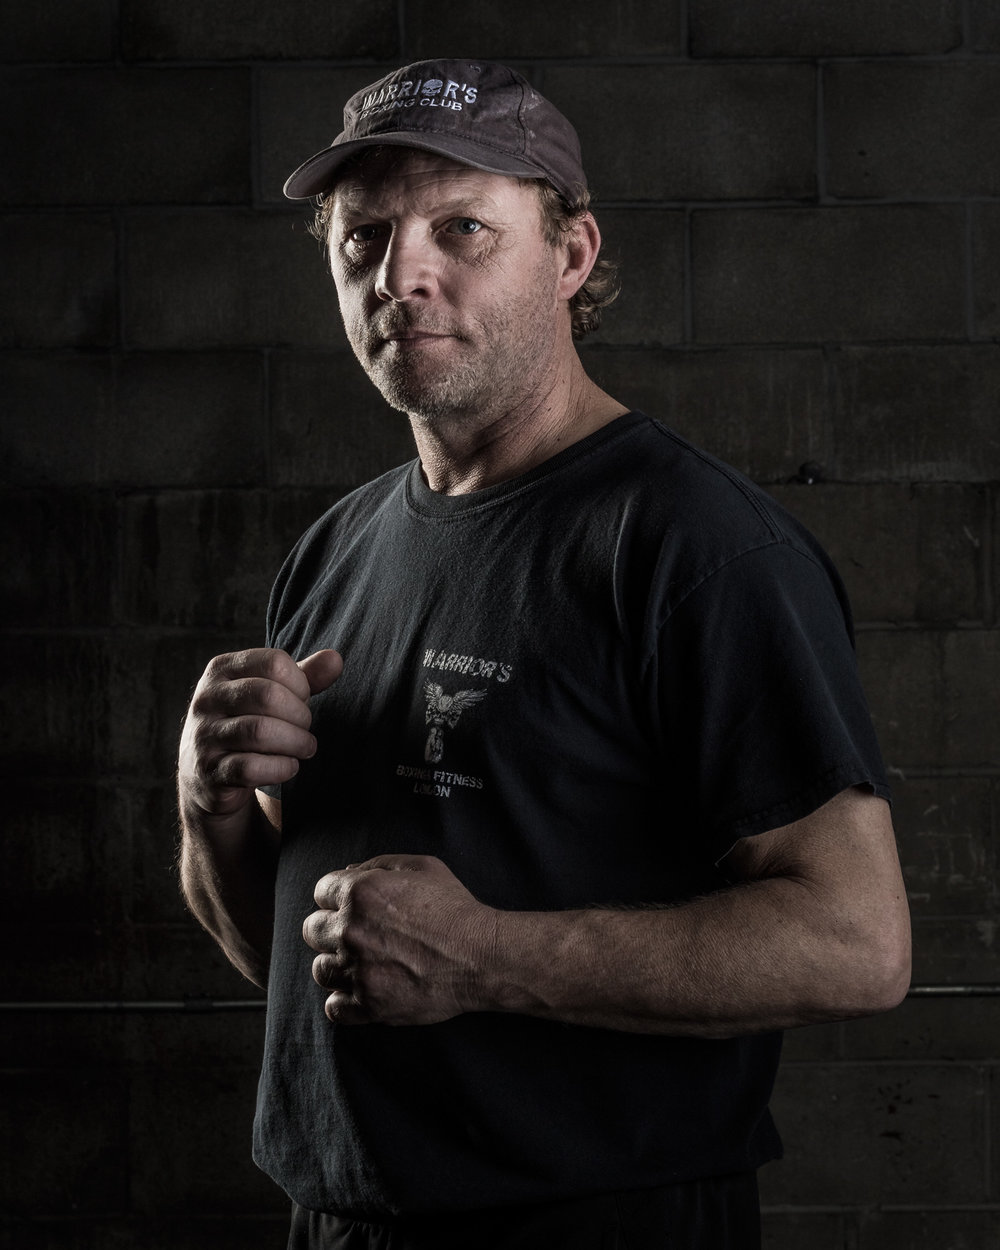 Rob Caron, Owner, Head Coach / Warrior's Boxing and Fitness